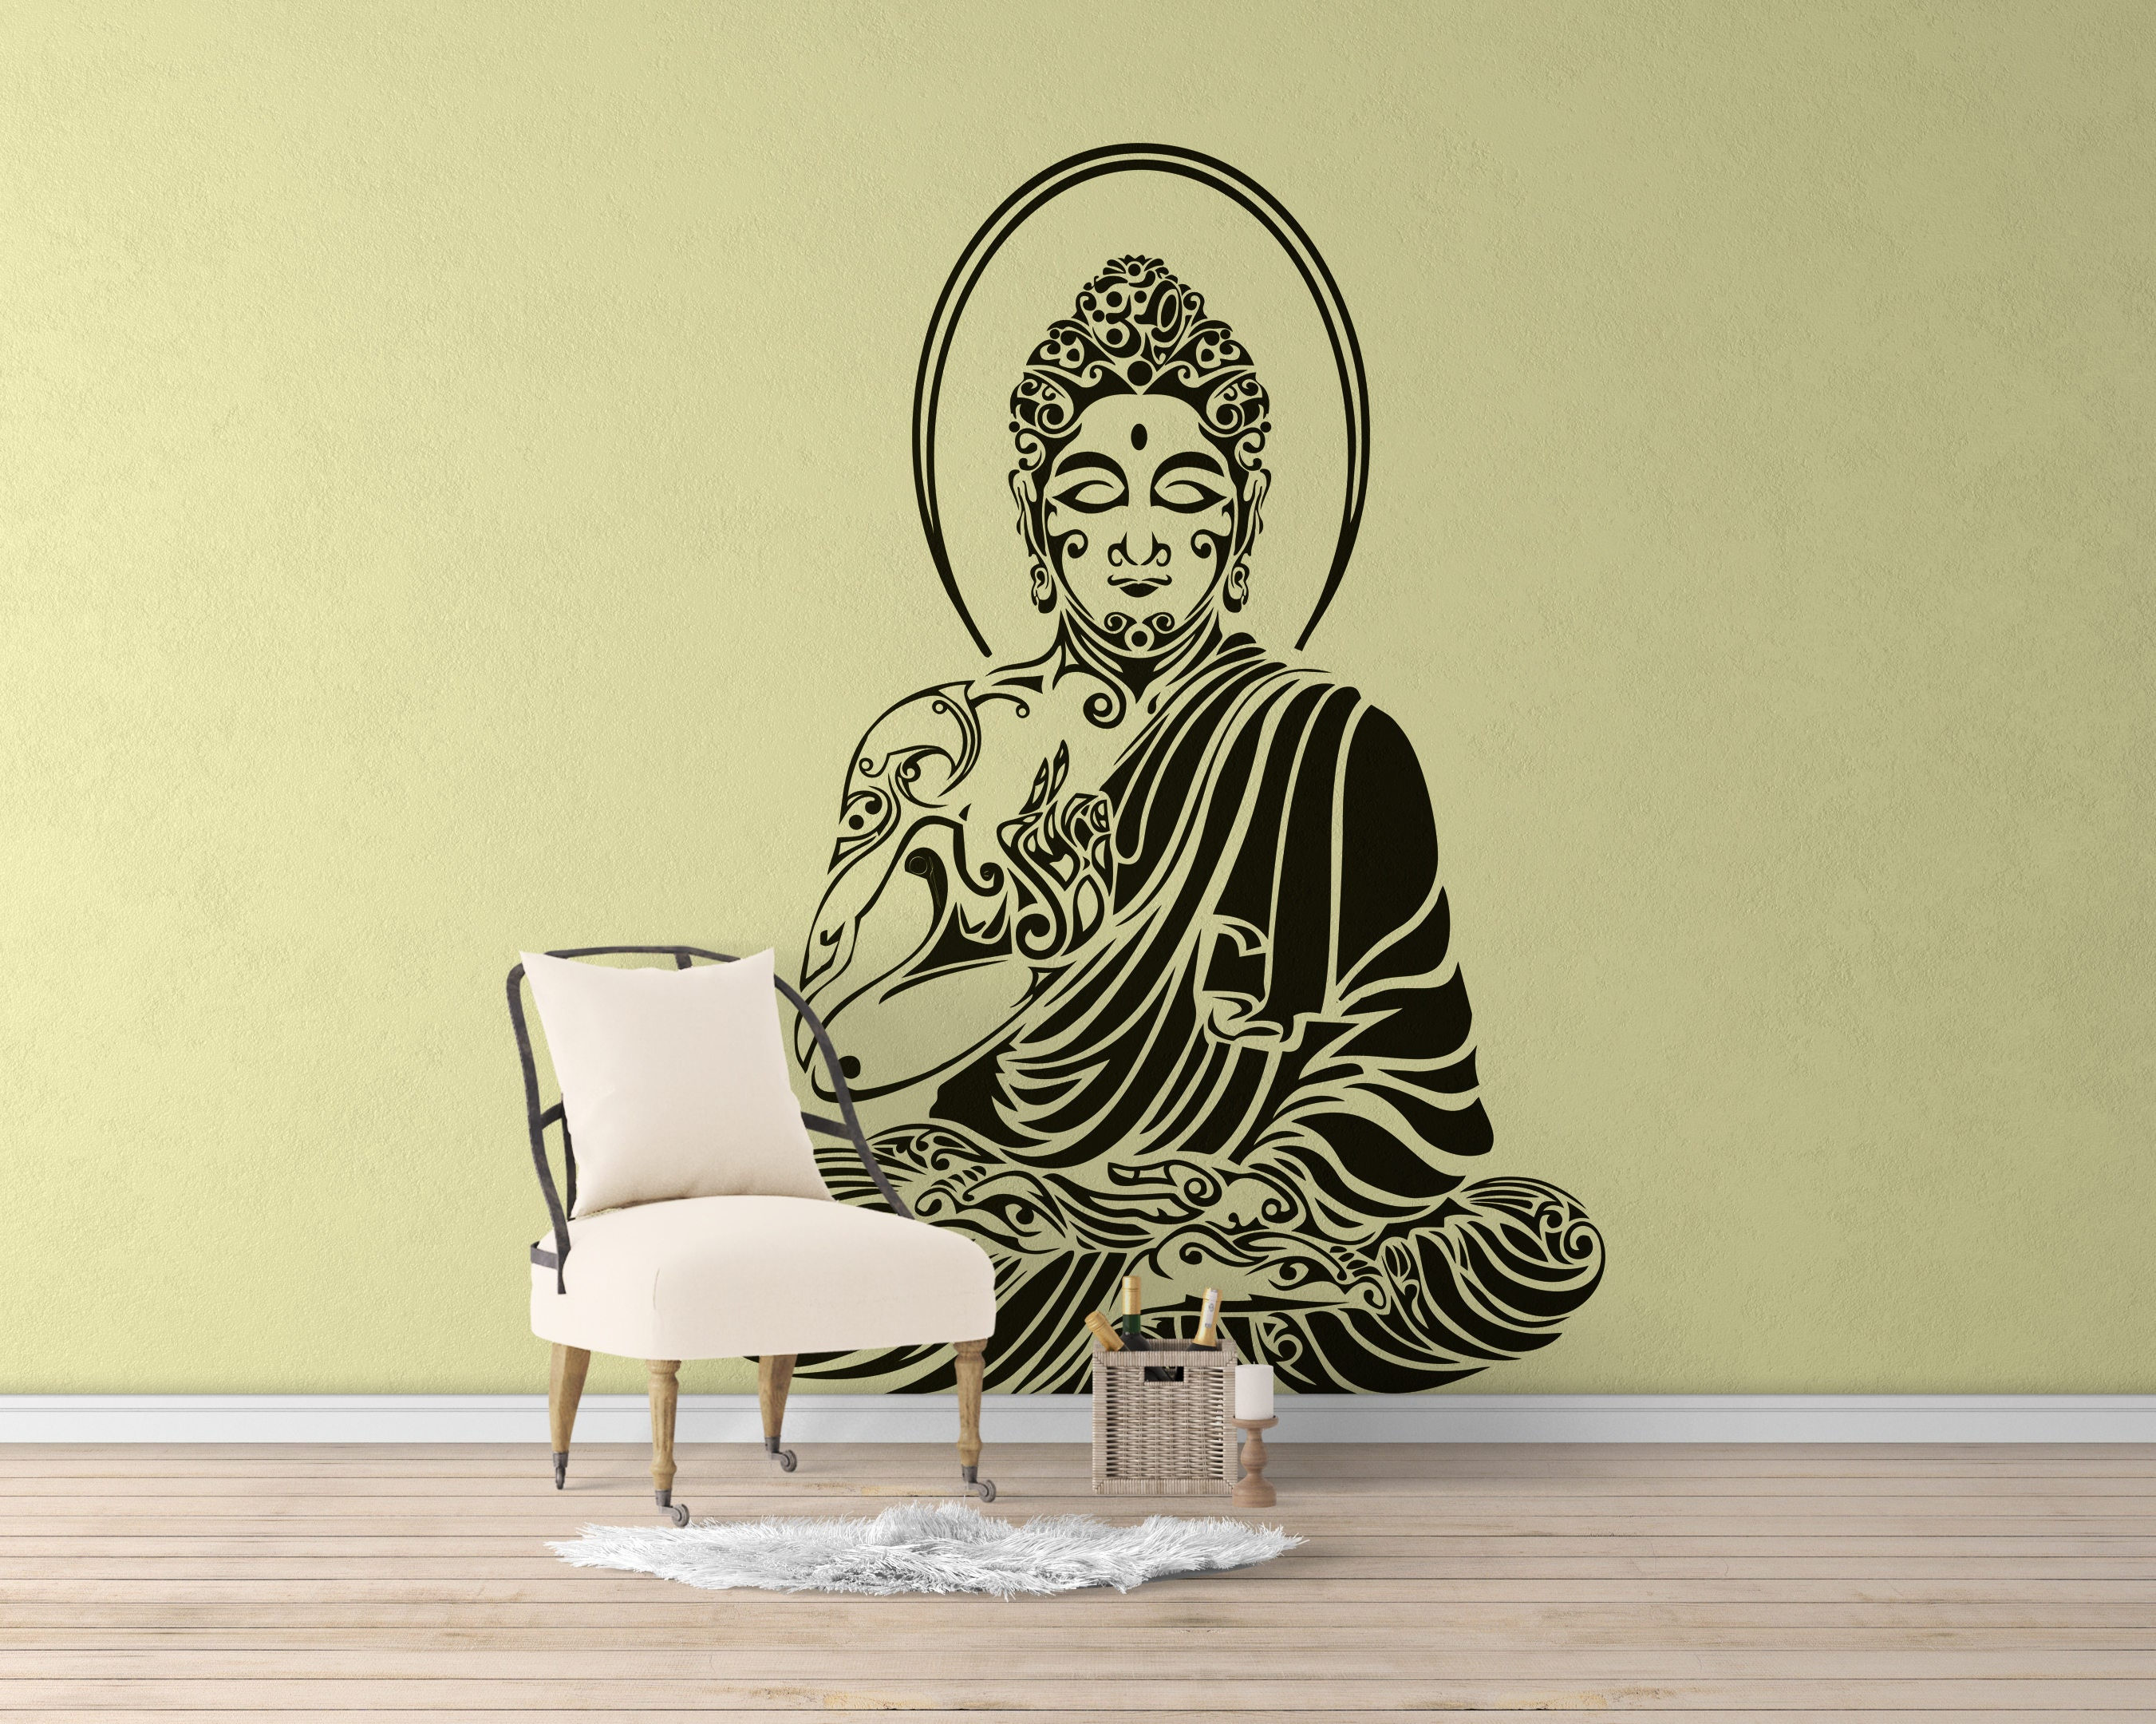 Tribal Buddha in meditation pose Vinyl Decal / Sticker, Many colors ...